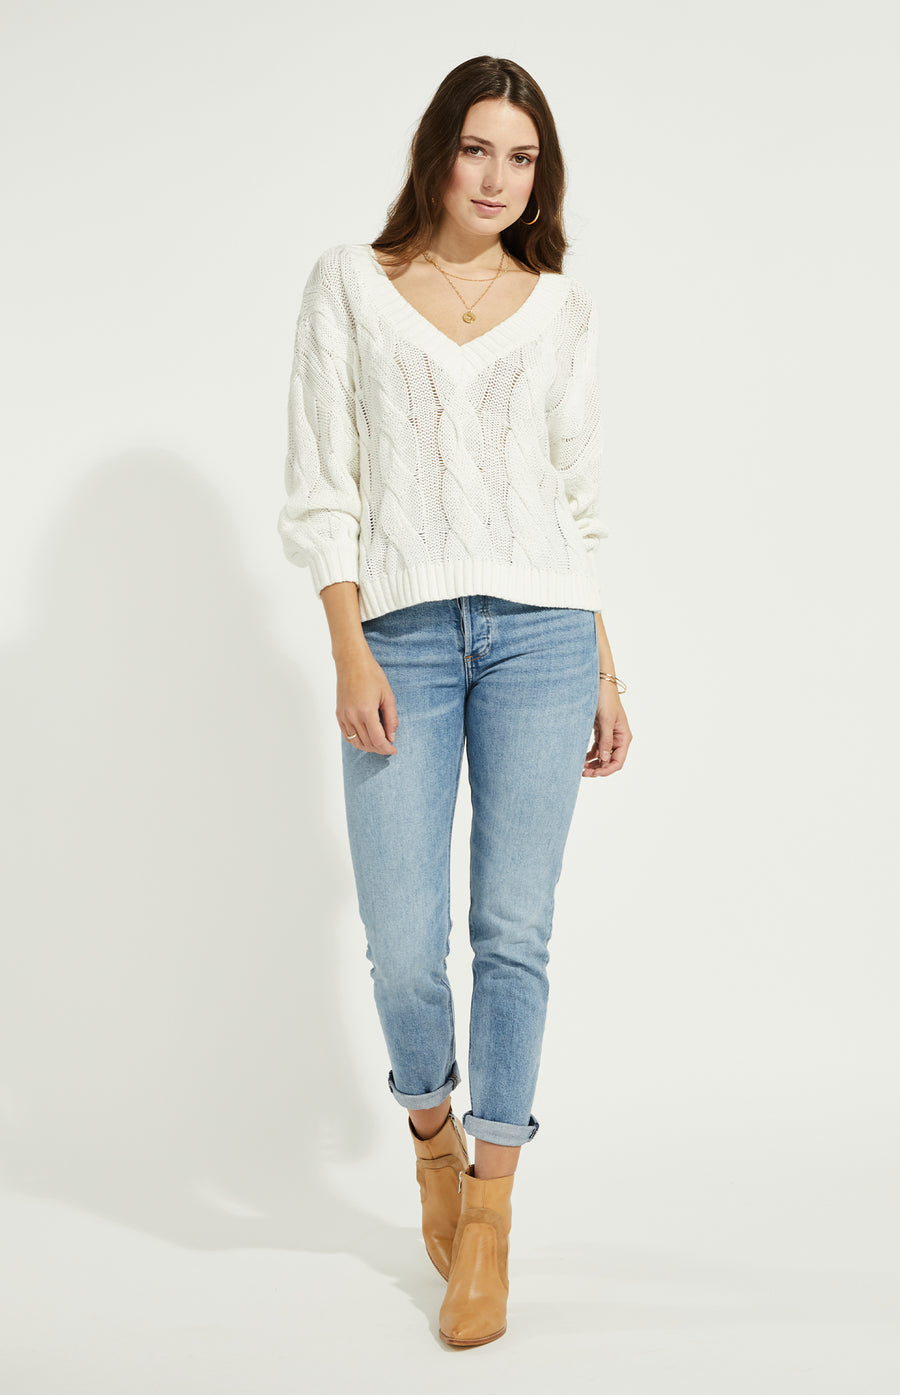 Gentle Fawn Heritage Sweater - White